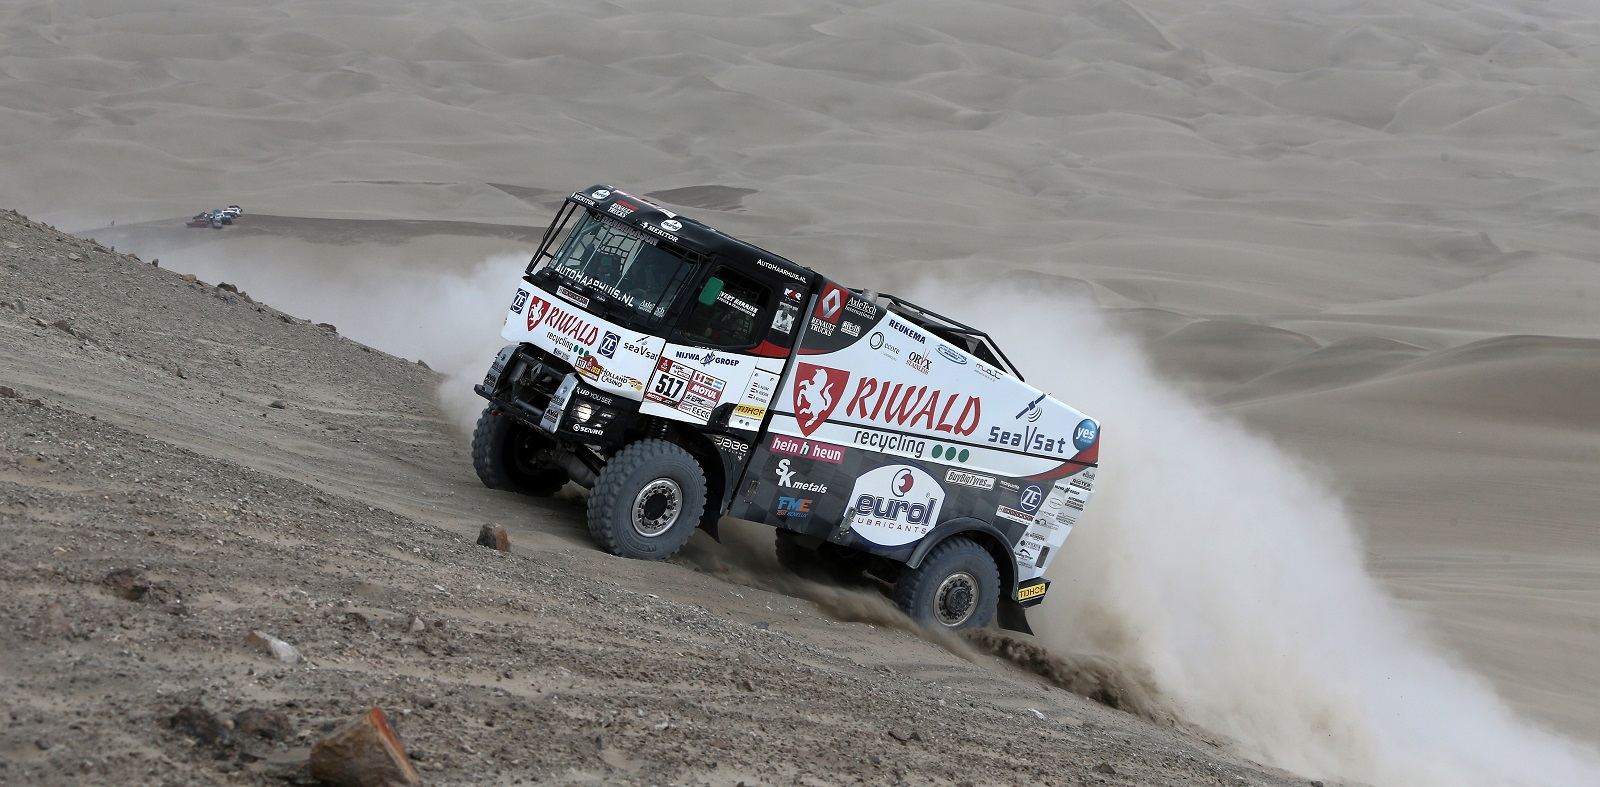 41st edition of Dakar Rally starts tomorrow. 78-year-old truck driver is